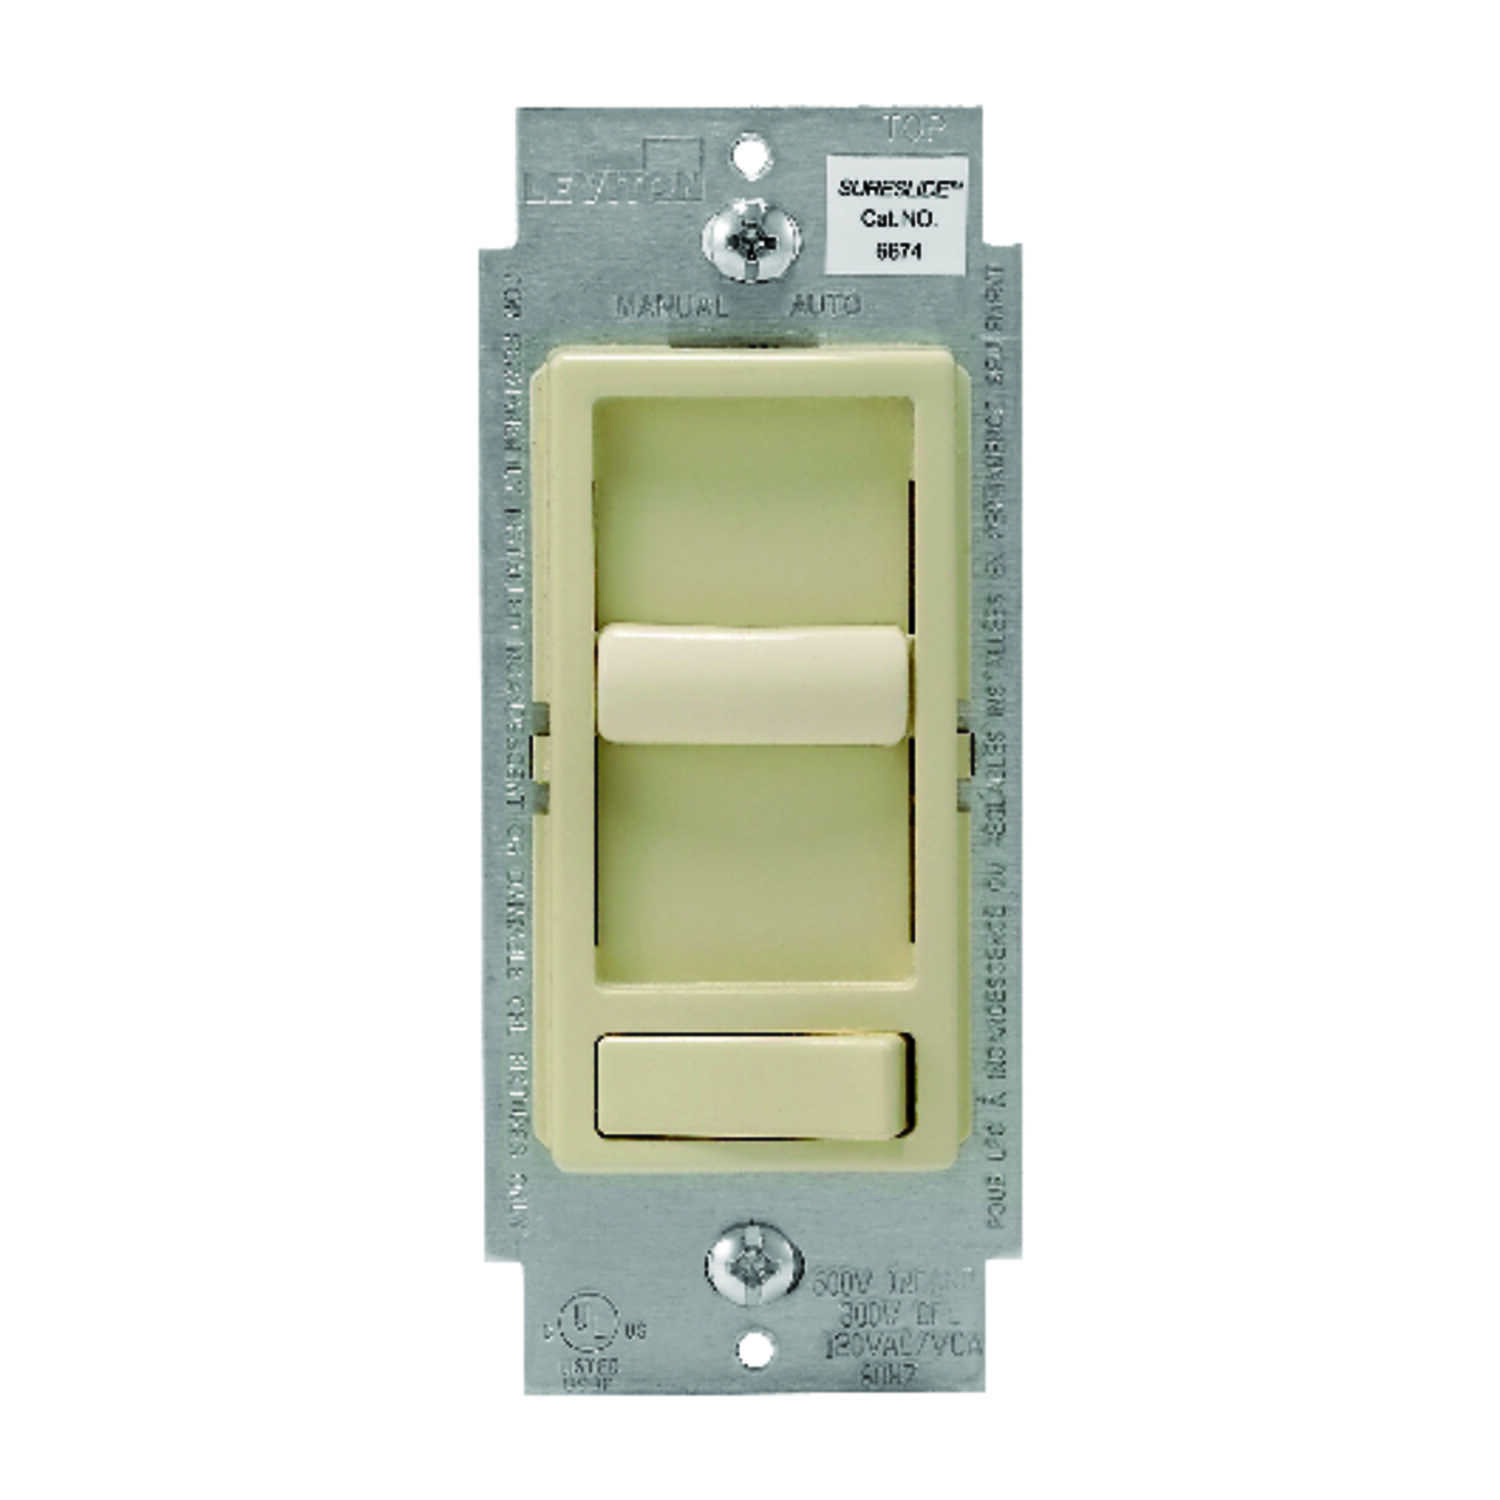 Leviton  SureSlide  Ivory  600 watts Preset Slide  Dimmer Switch  1 pk